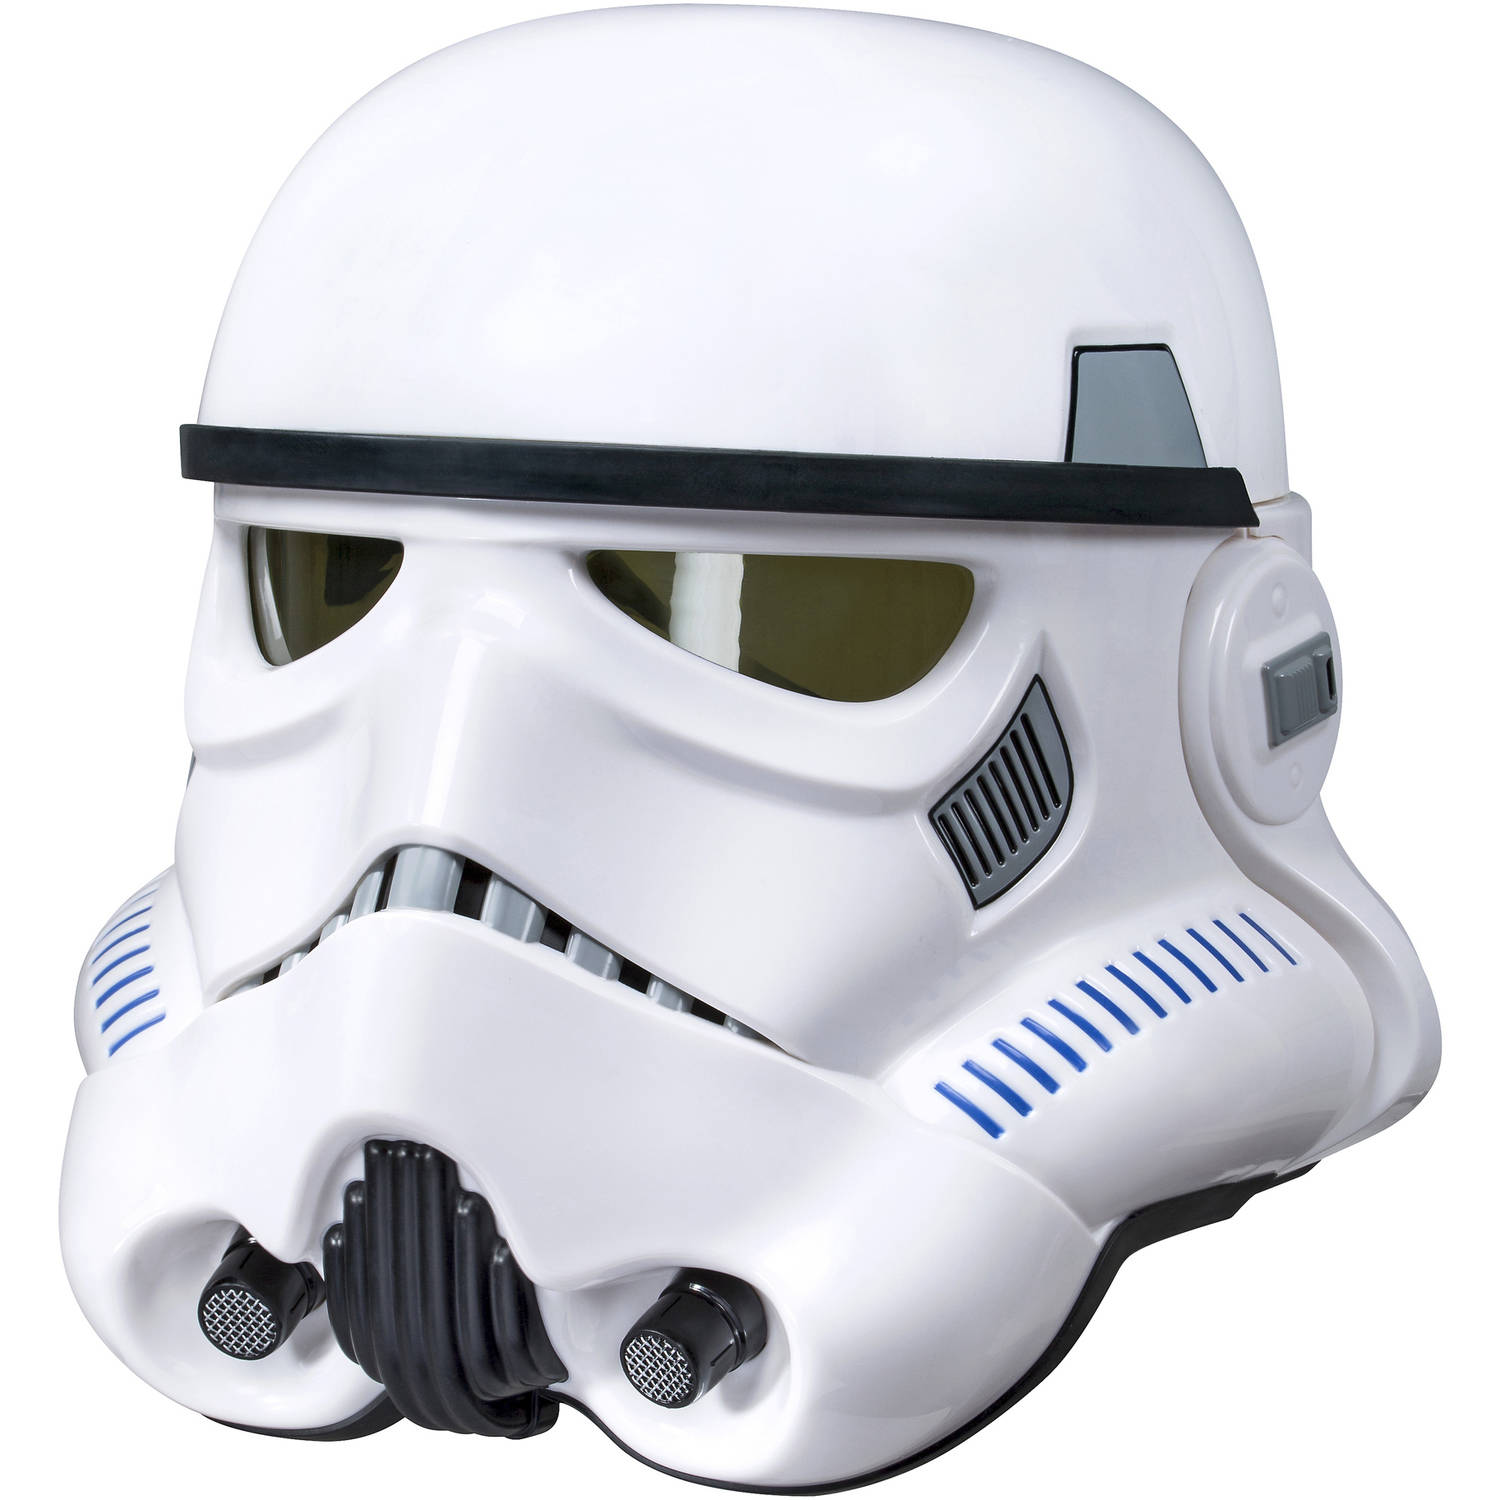 SW S1 BL BLACK SERIES HELMET